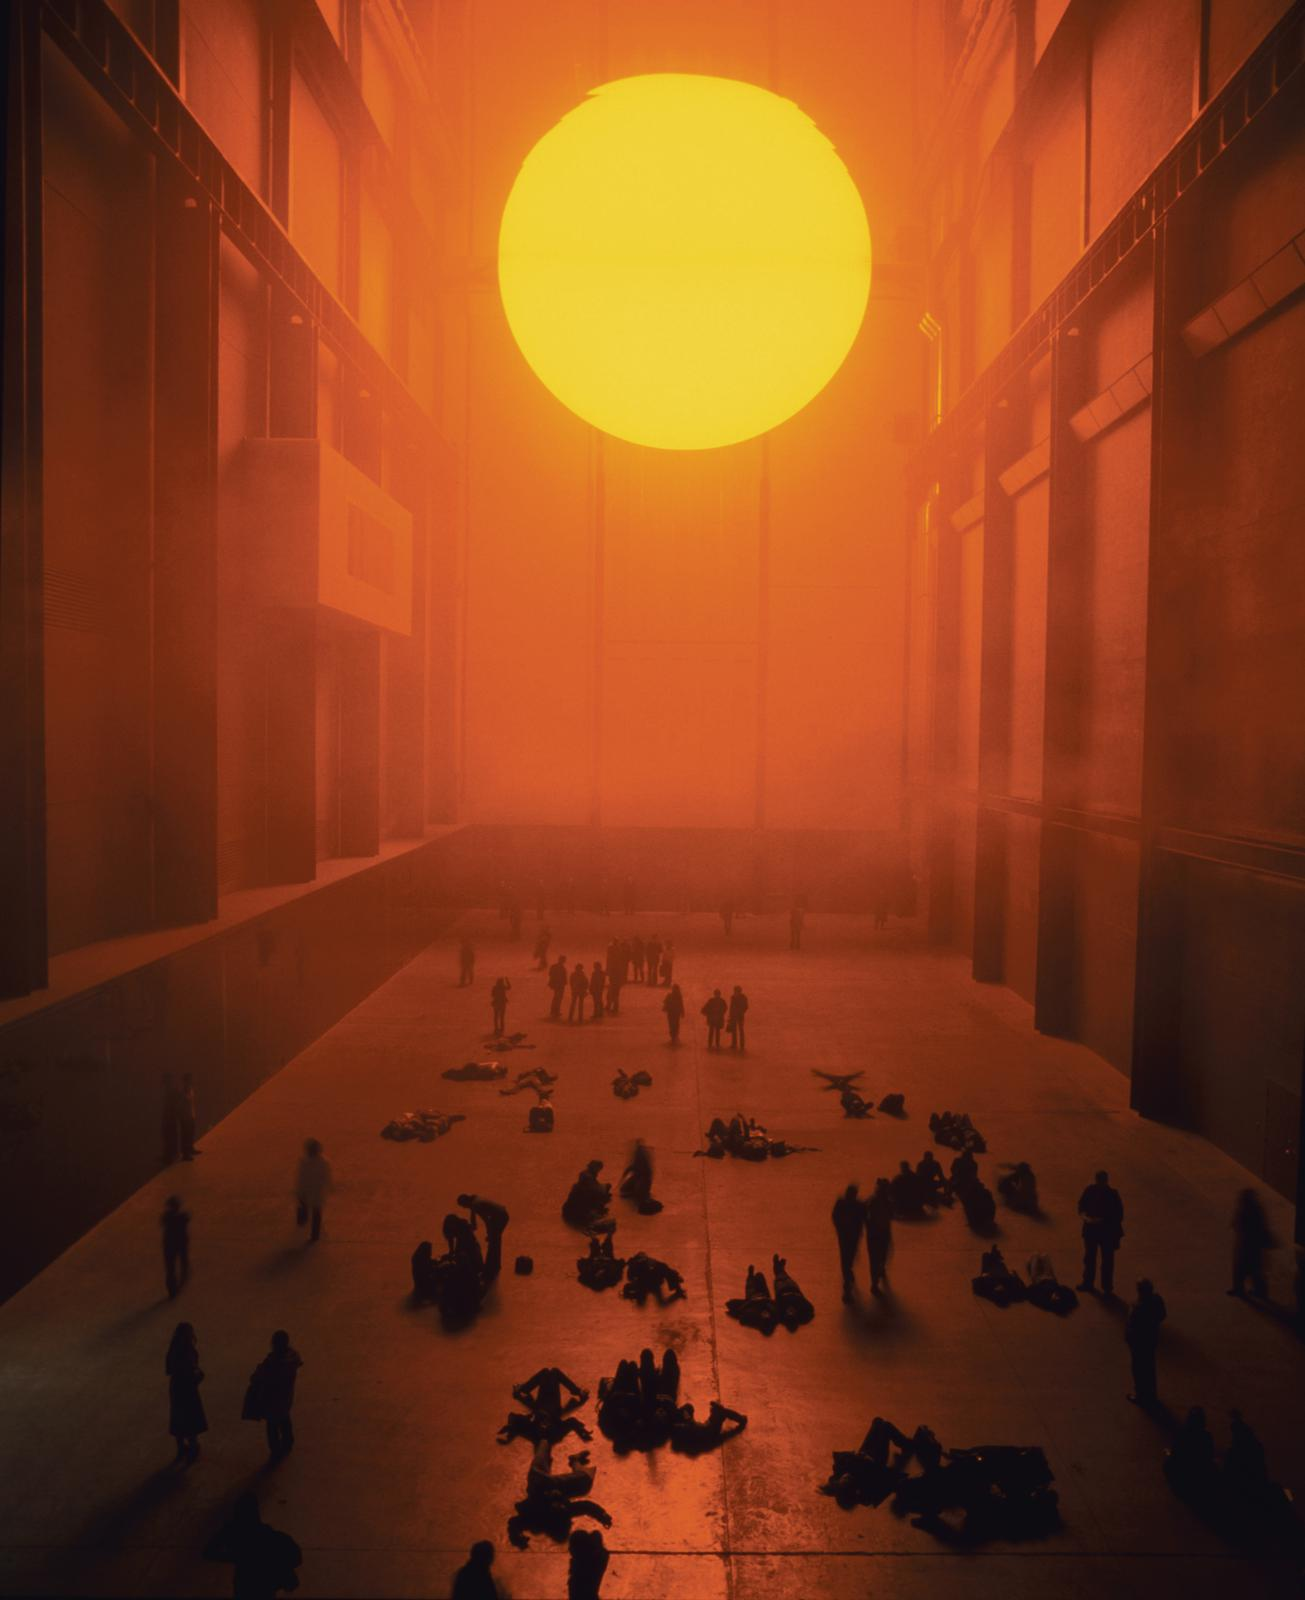 The Weather Project. Olafur Eliasson. Tate Gallery 2003-2004